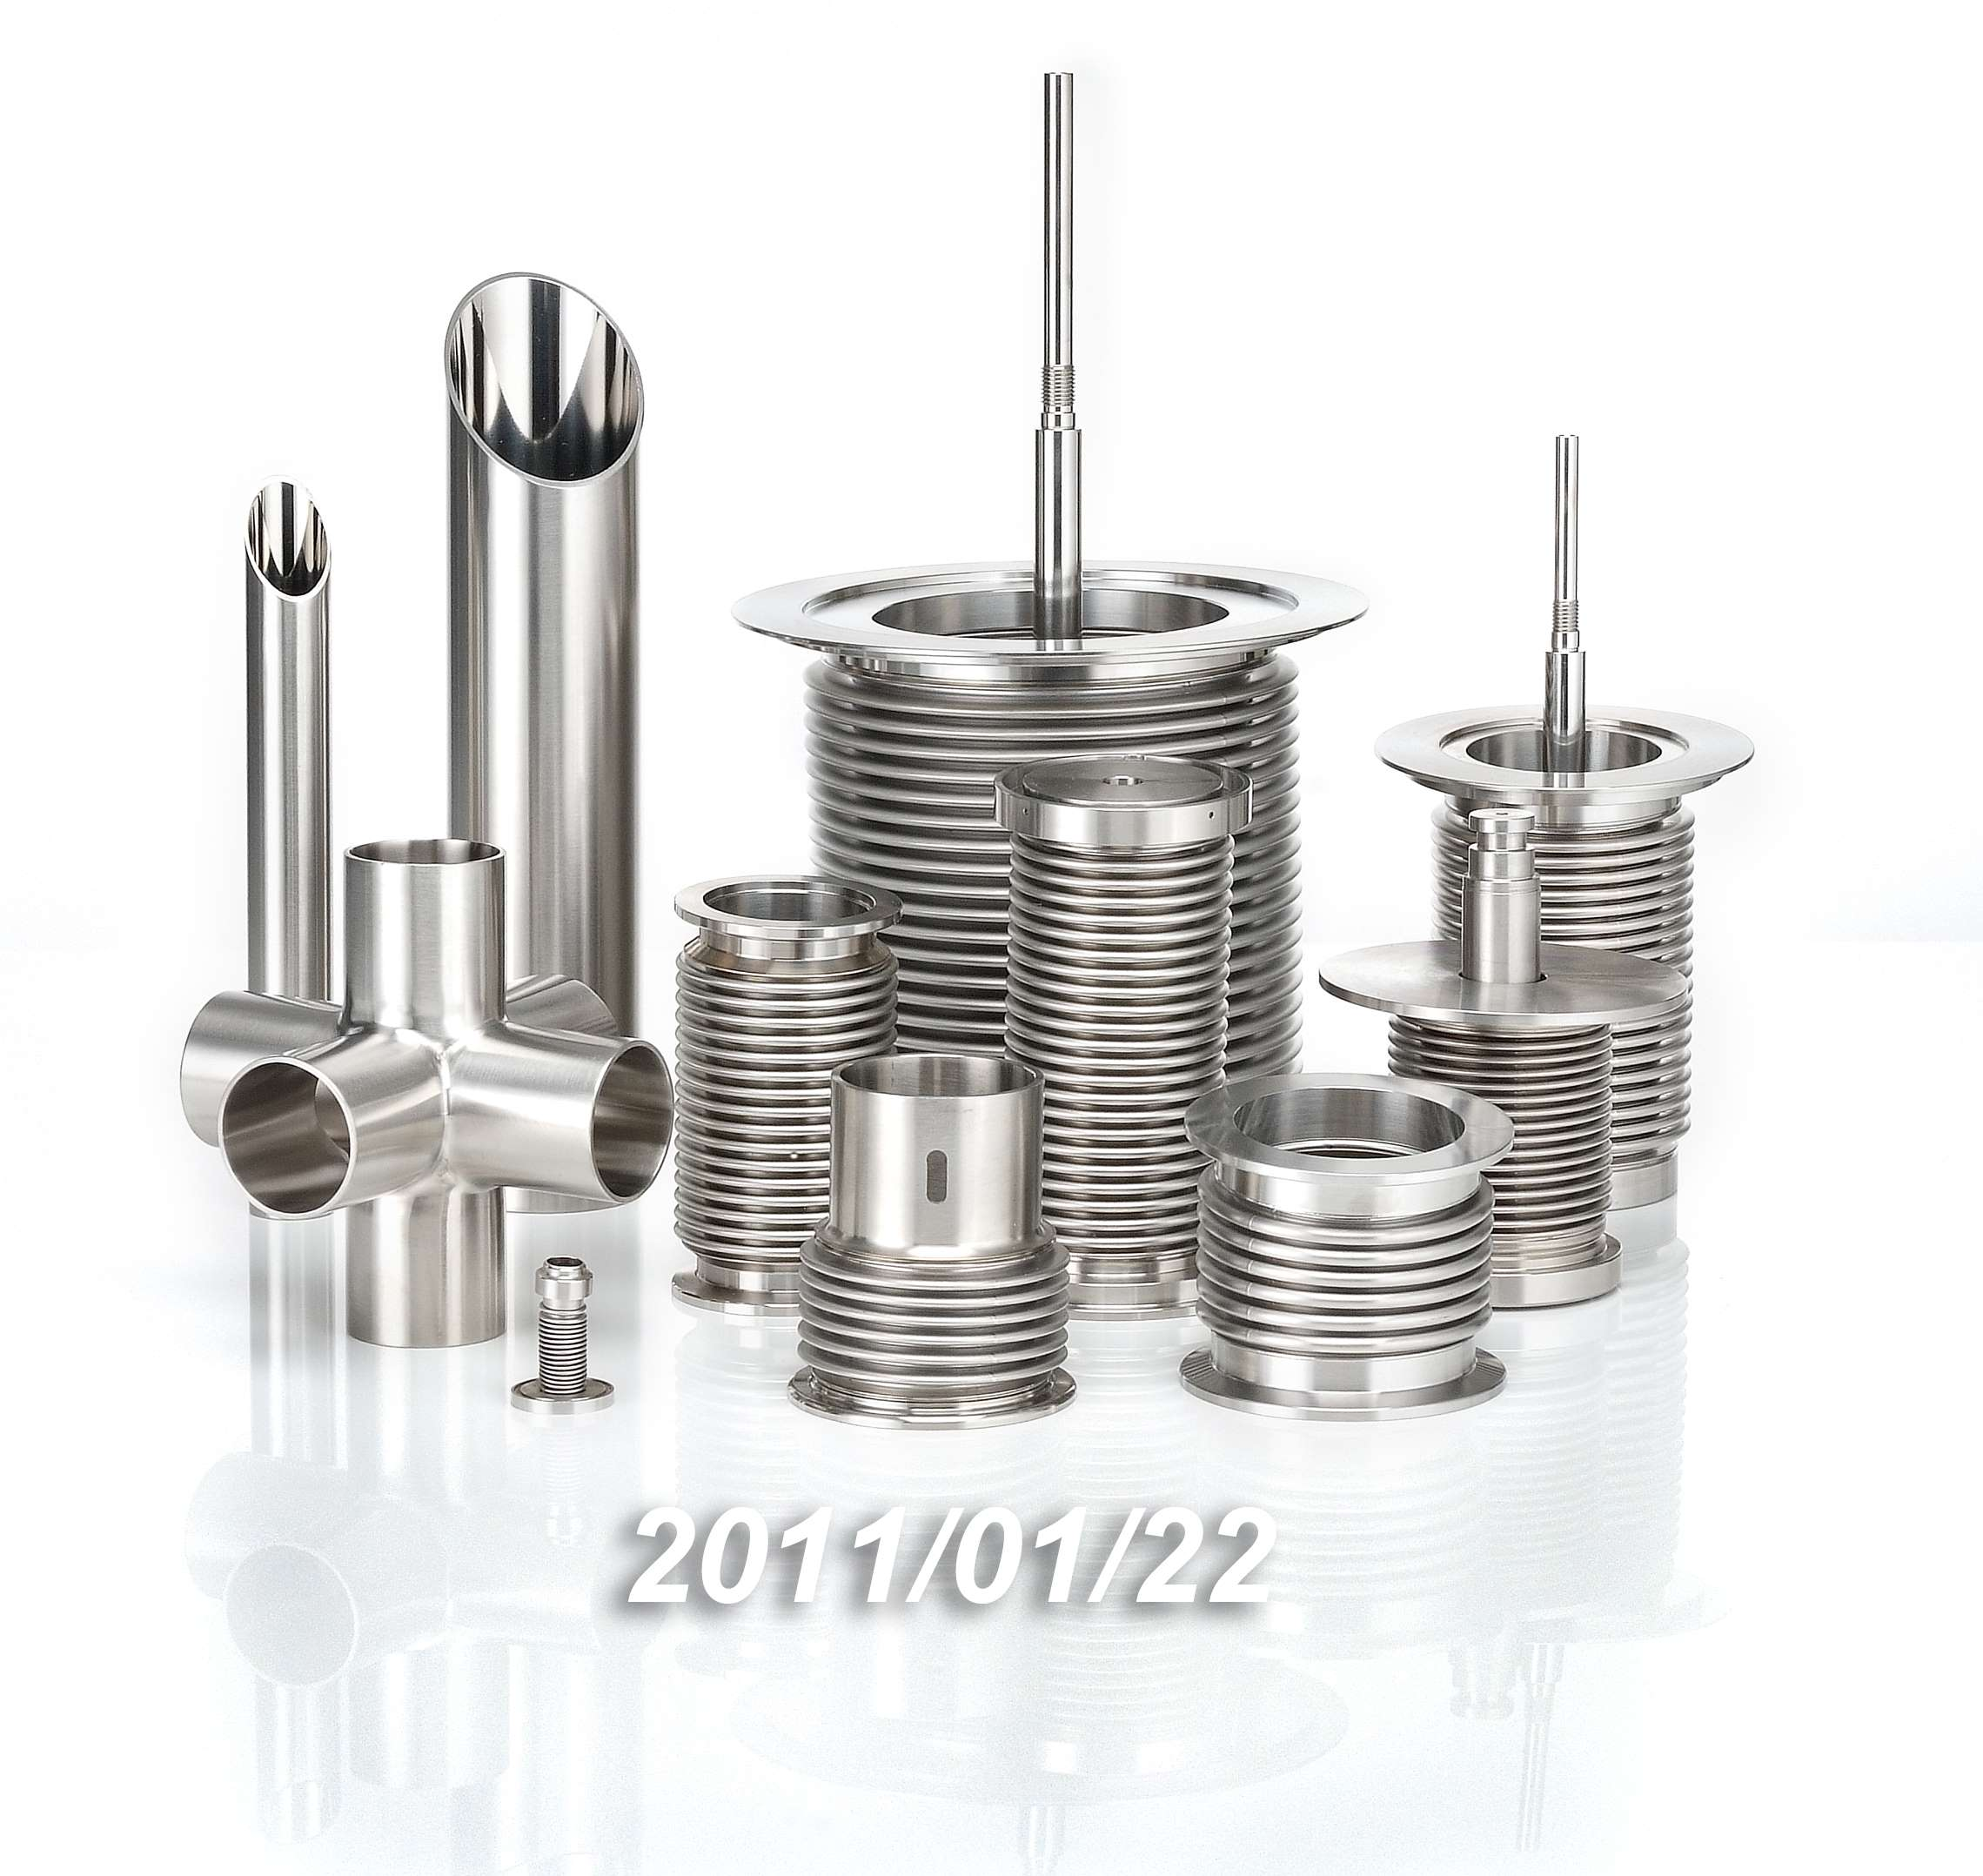 Qualified Other Industrial  Components & Fasteners Manufacturer and Supplier